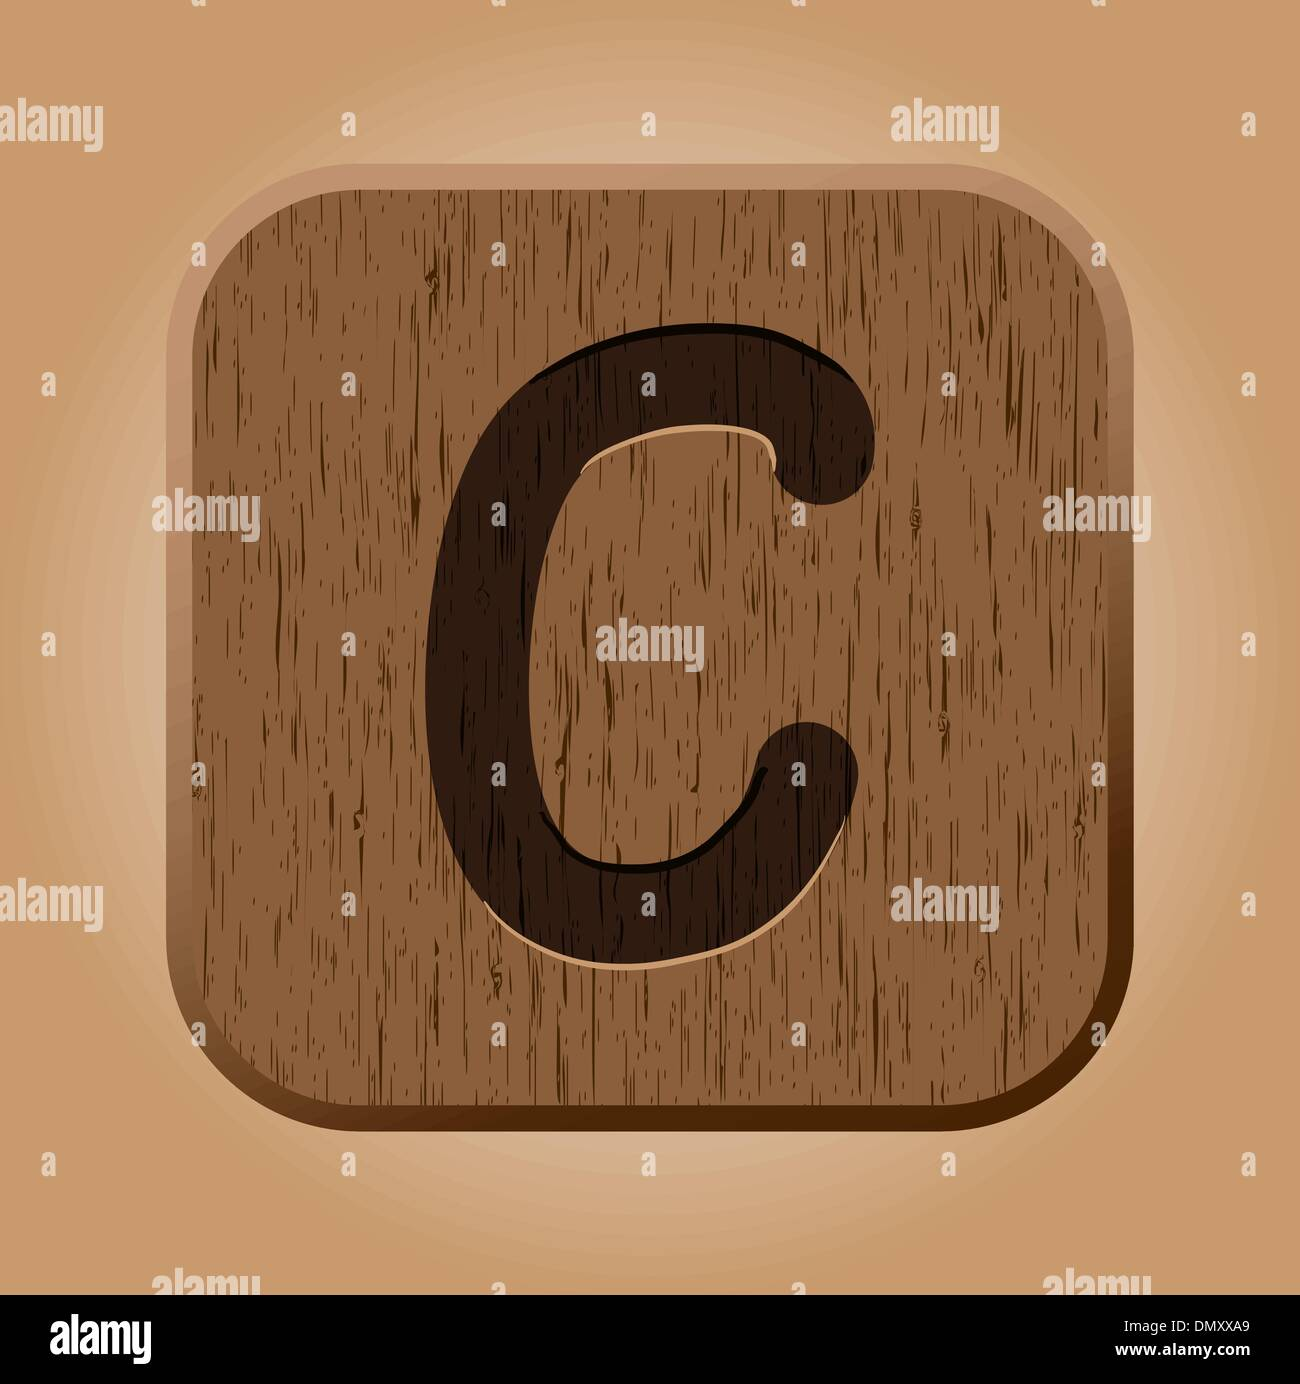 Hand drawn  wooden letter C. - Stock Image